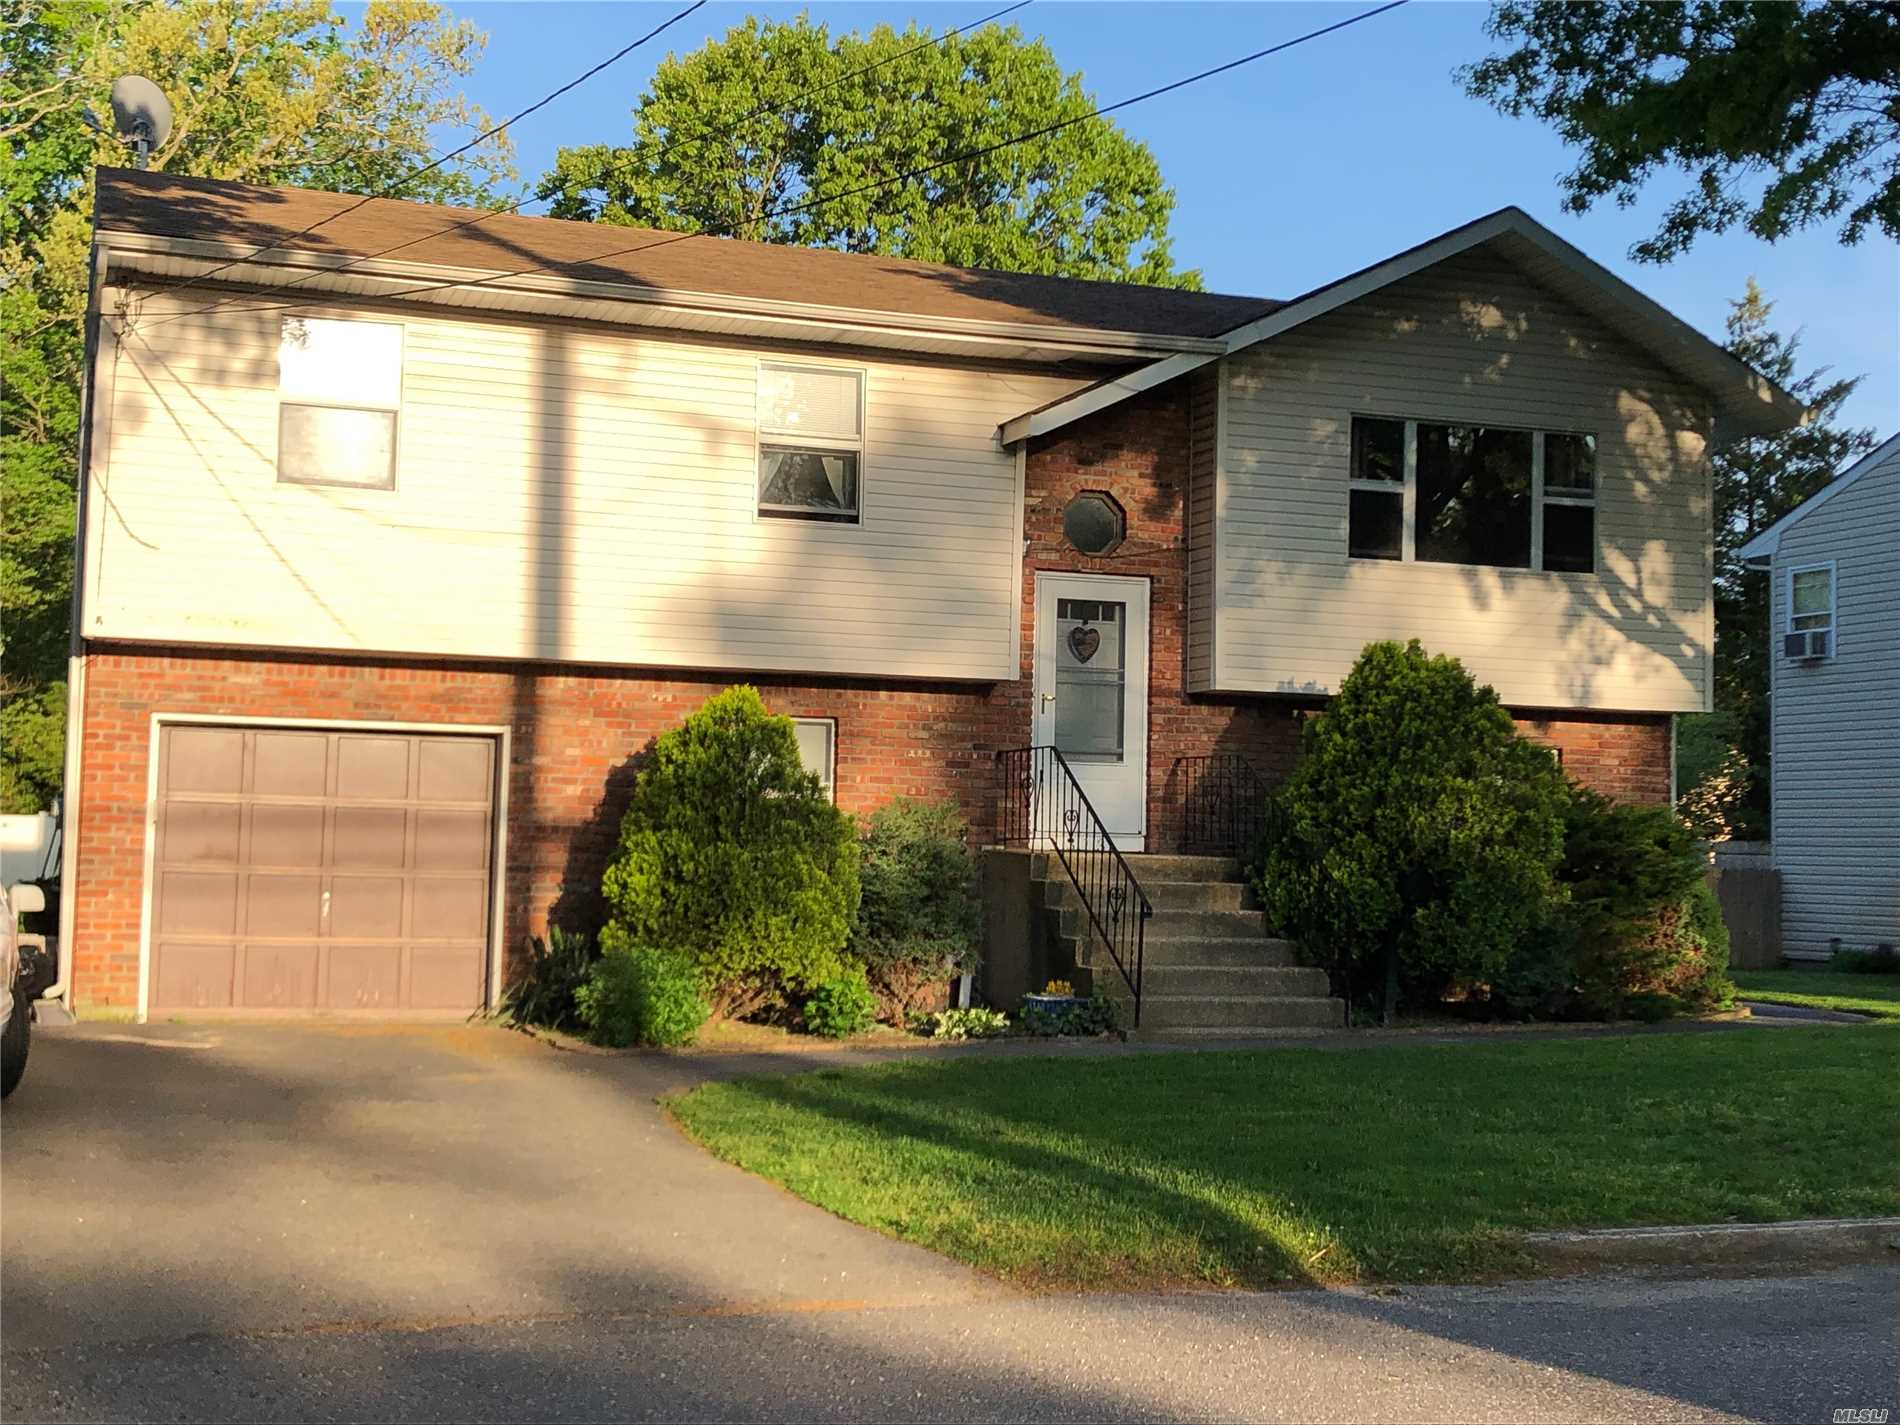 IMPECABLE 3 BEDROOMS WITH NEW CARPET AND WOOD FLOORS! NEW APPLIANCES! BRIGHT AND SUNNY!